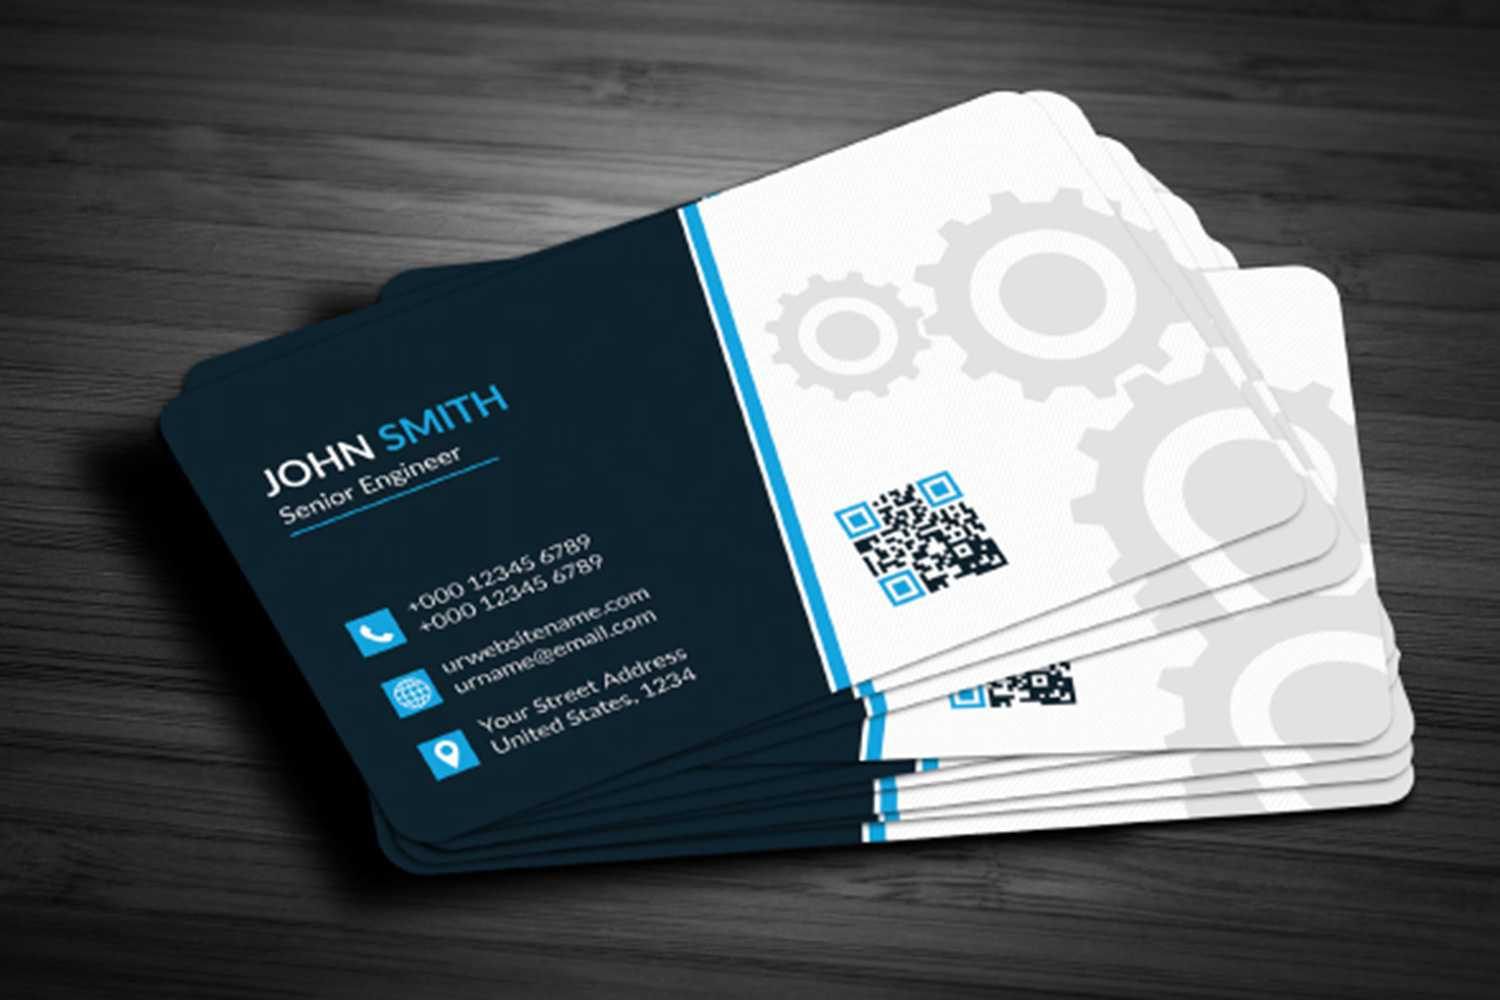 028 Blank Business Card Template Psd Free Download Maxpoint with regard to Free Bussiness Card Template